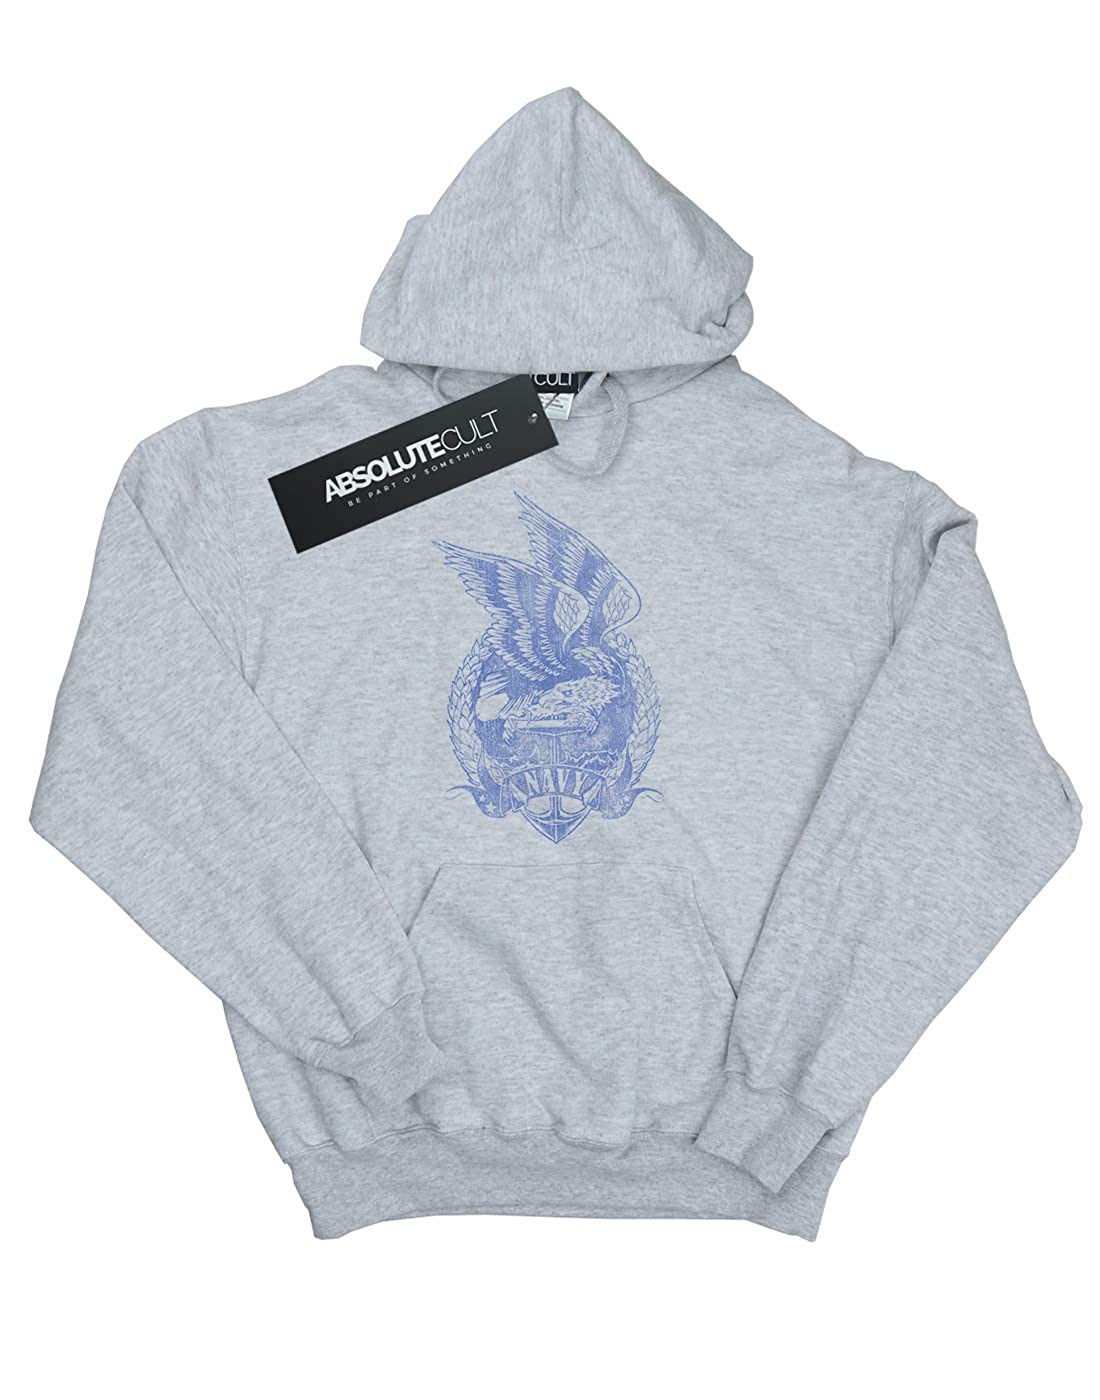 ABSOLUTECULT Drewbacca Girls Fight from Above Hoodie